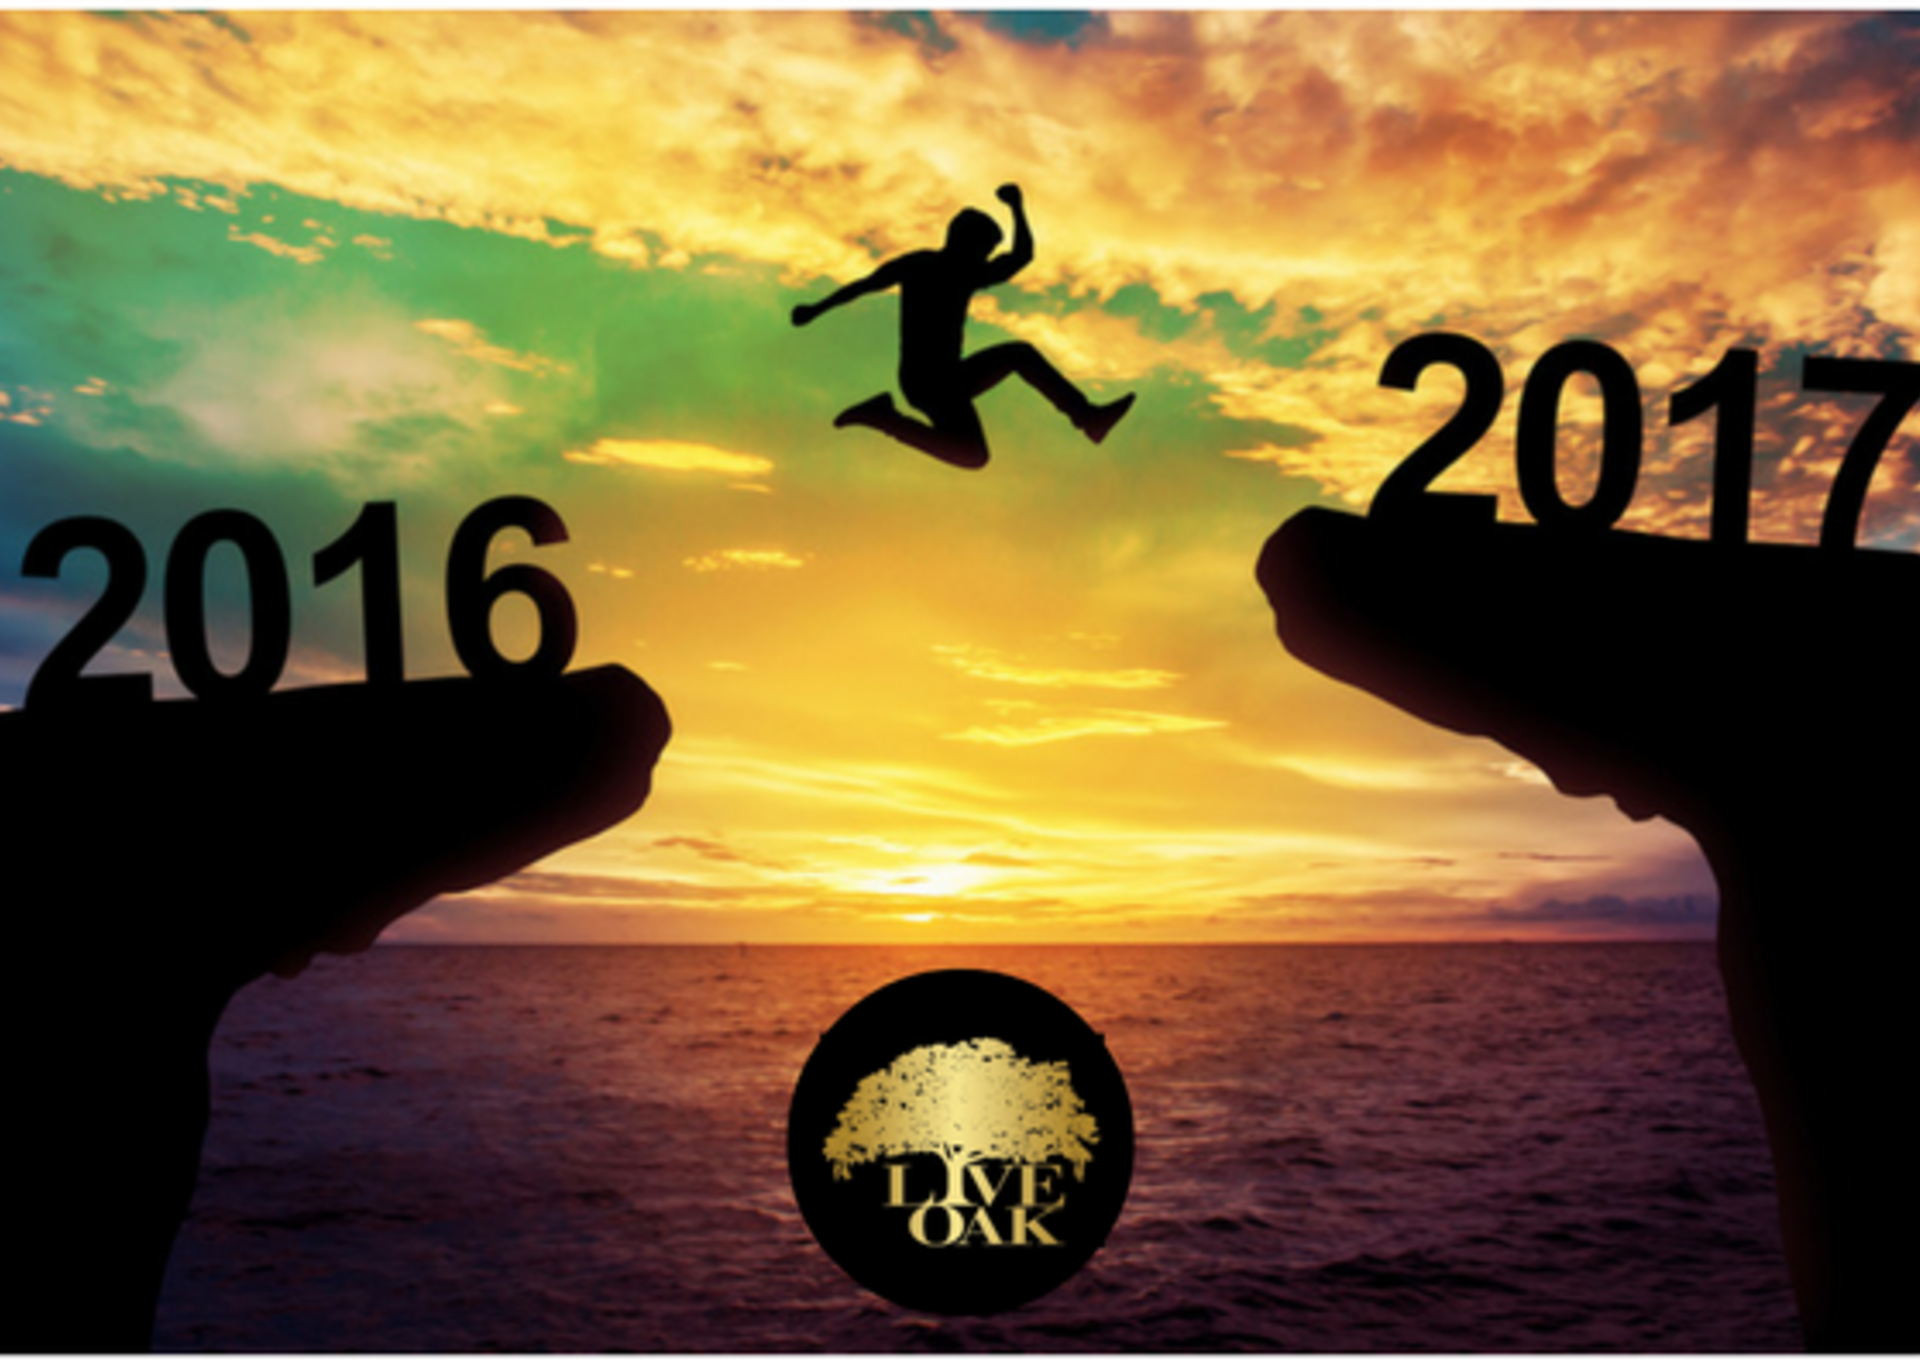 5 NEW YEARS RESOLUTIONS EVERY SELLER SHOULD LIVE BY IN 2017